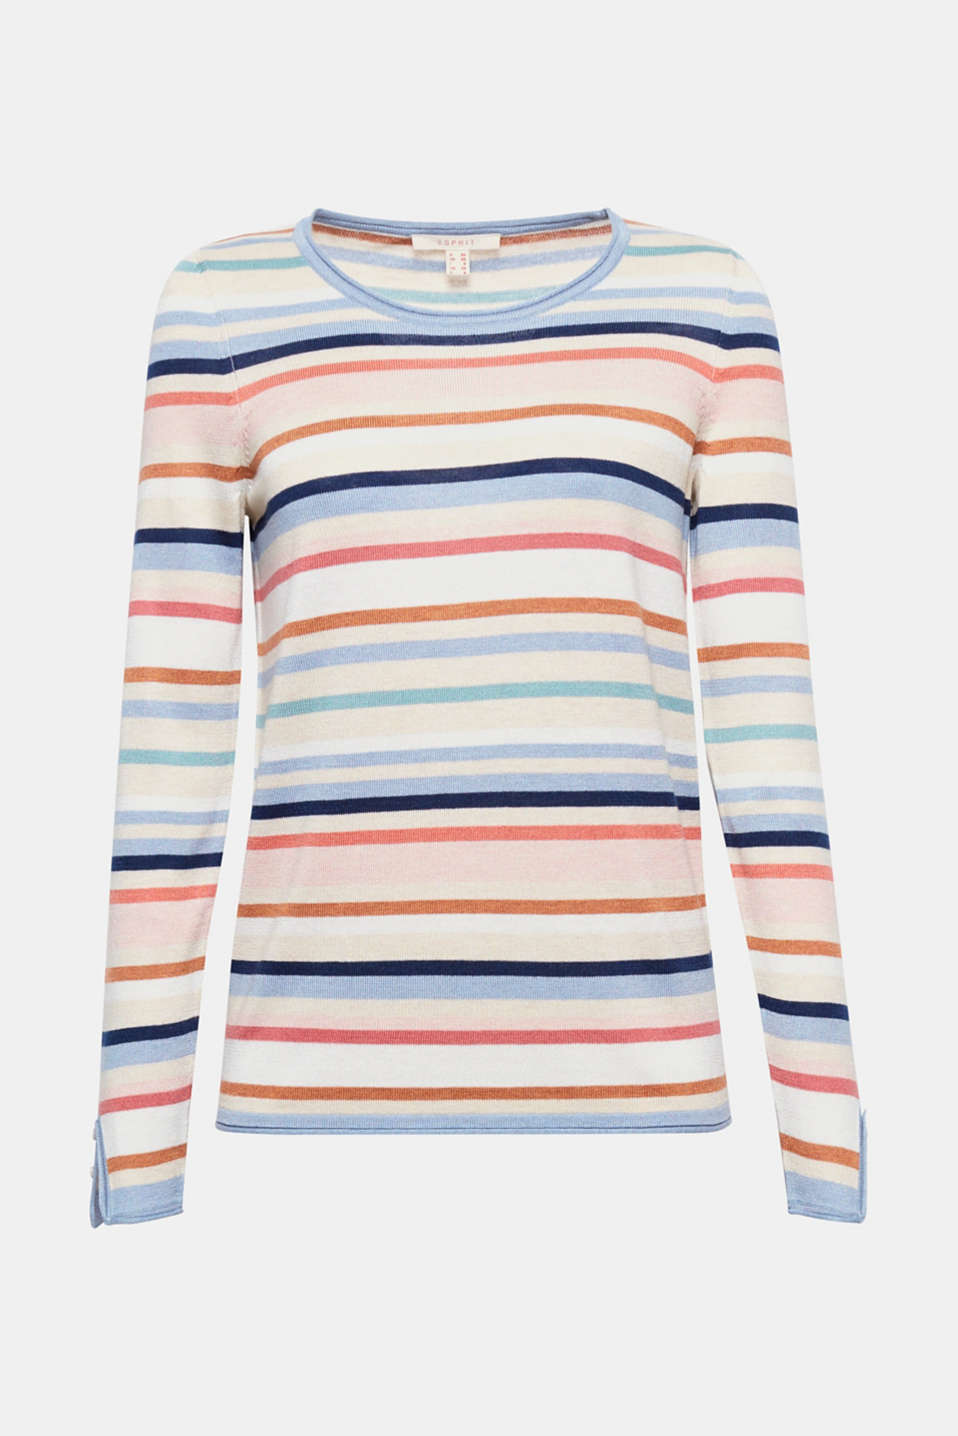 Soft knit with colourful stripes: This jumper with a casual rolled edge is exceptionally comfortable and unfussy!